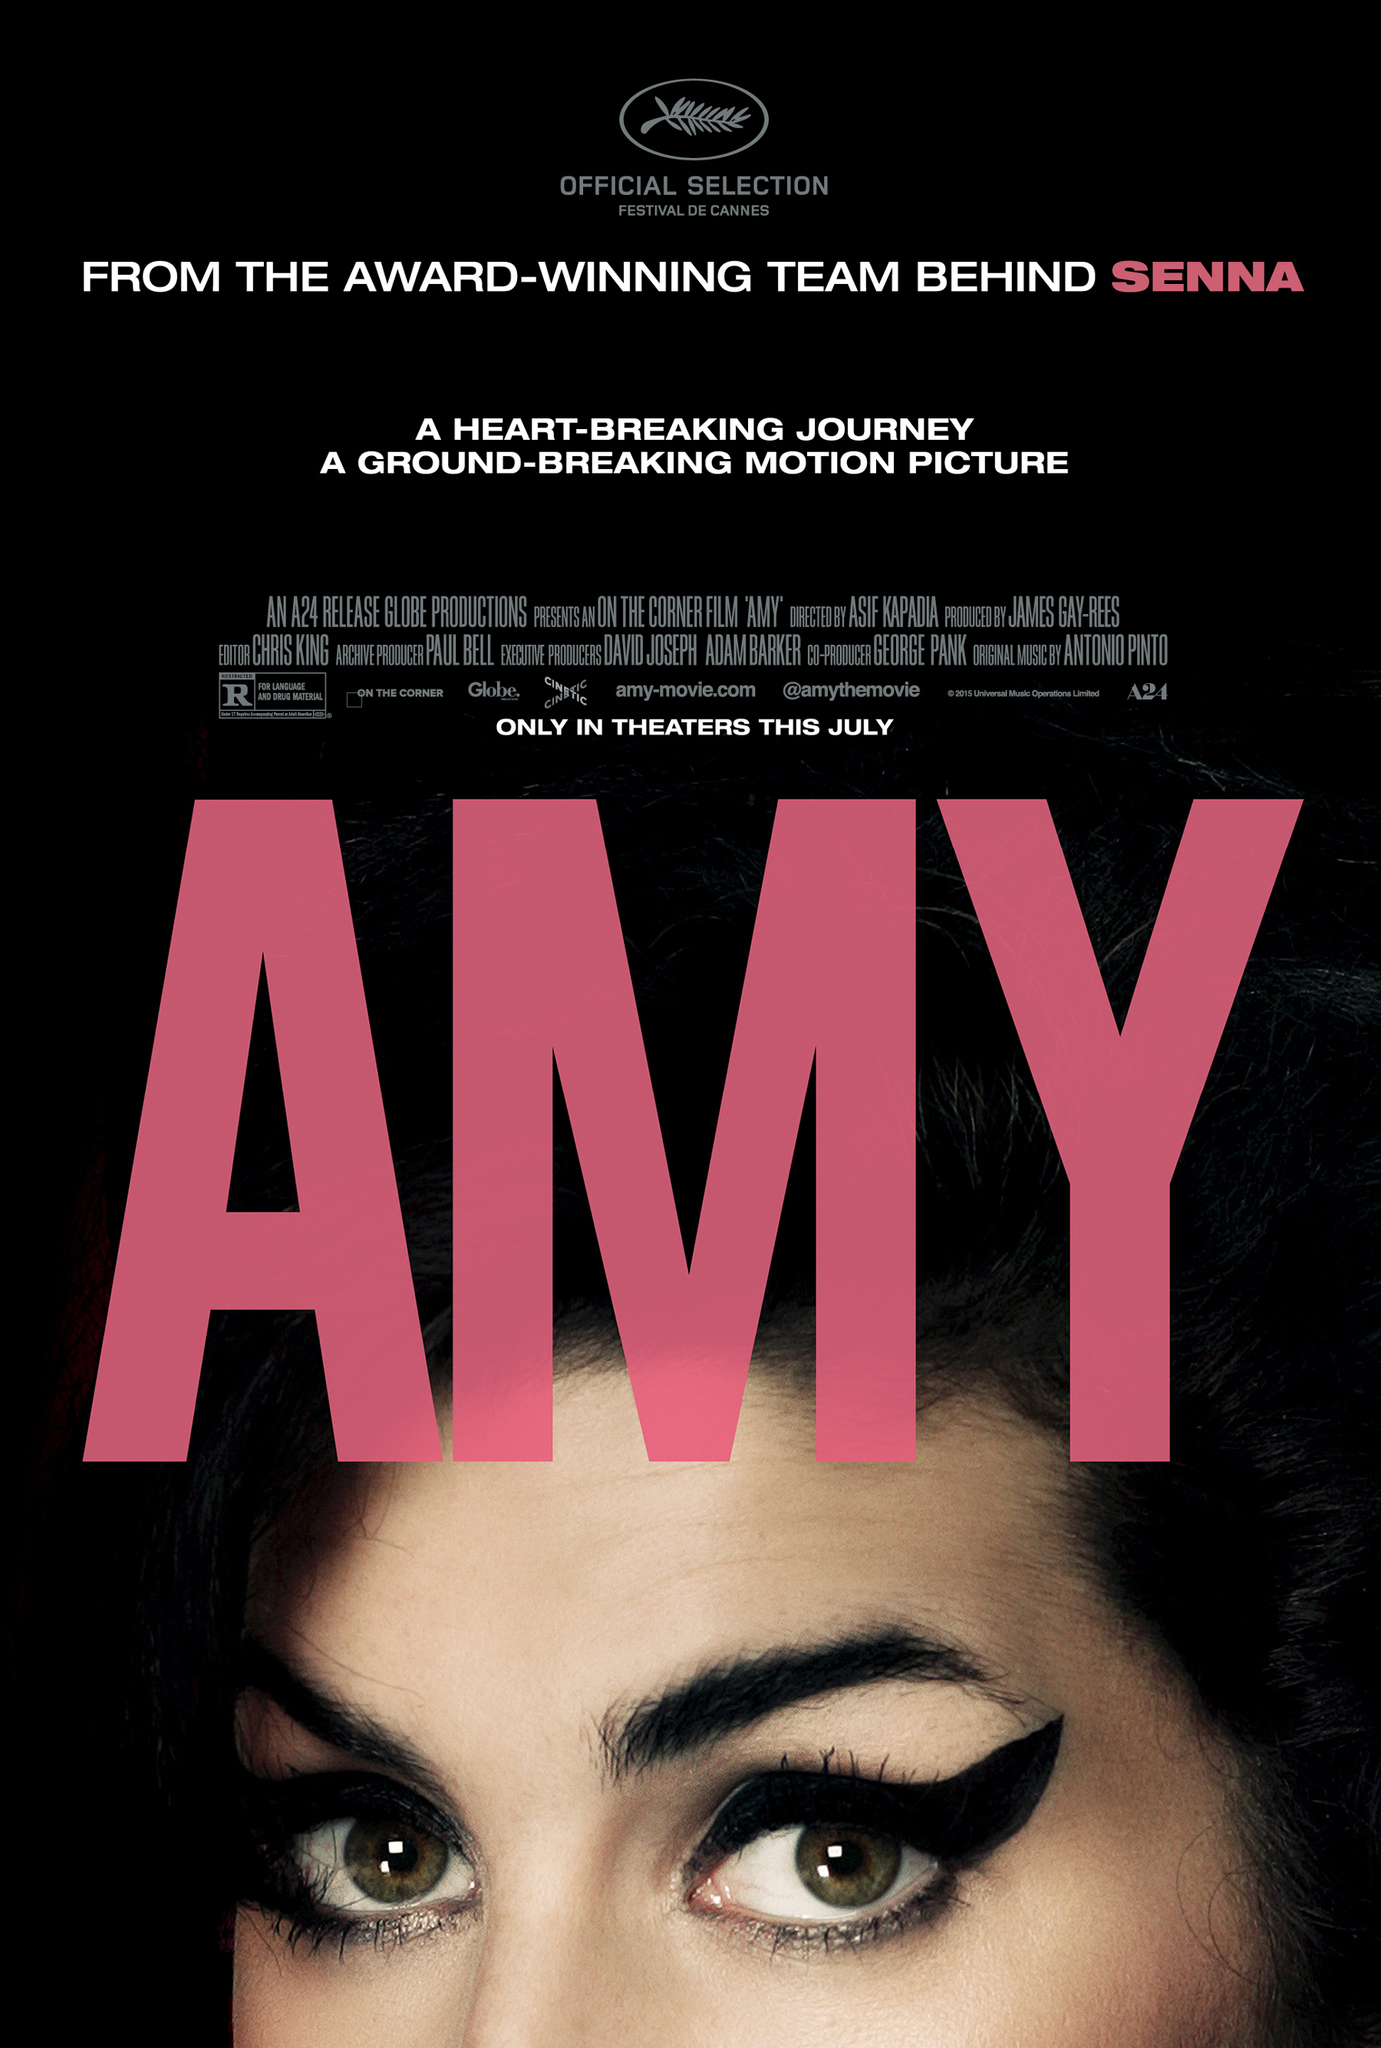 documentaire-amy-winehouse-netflix